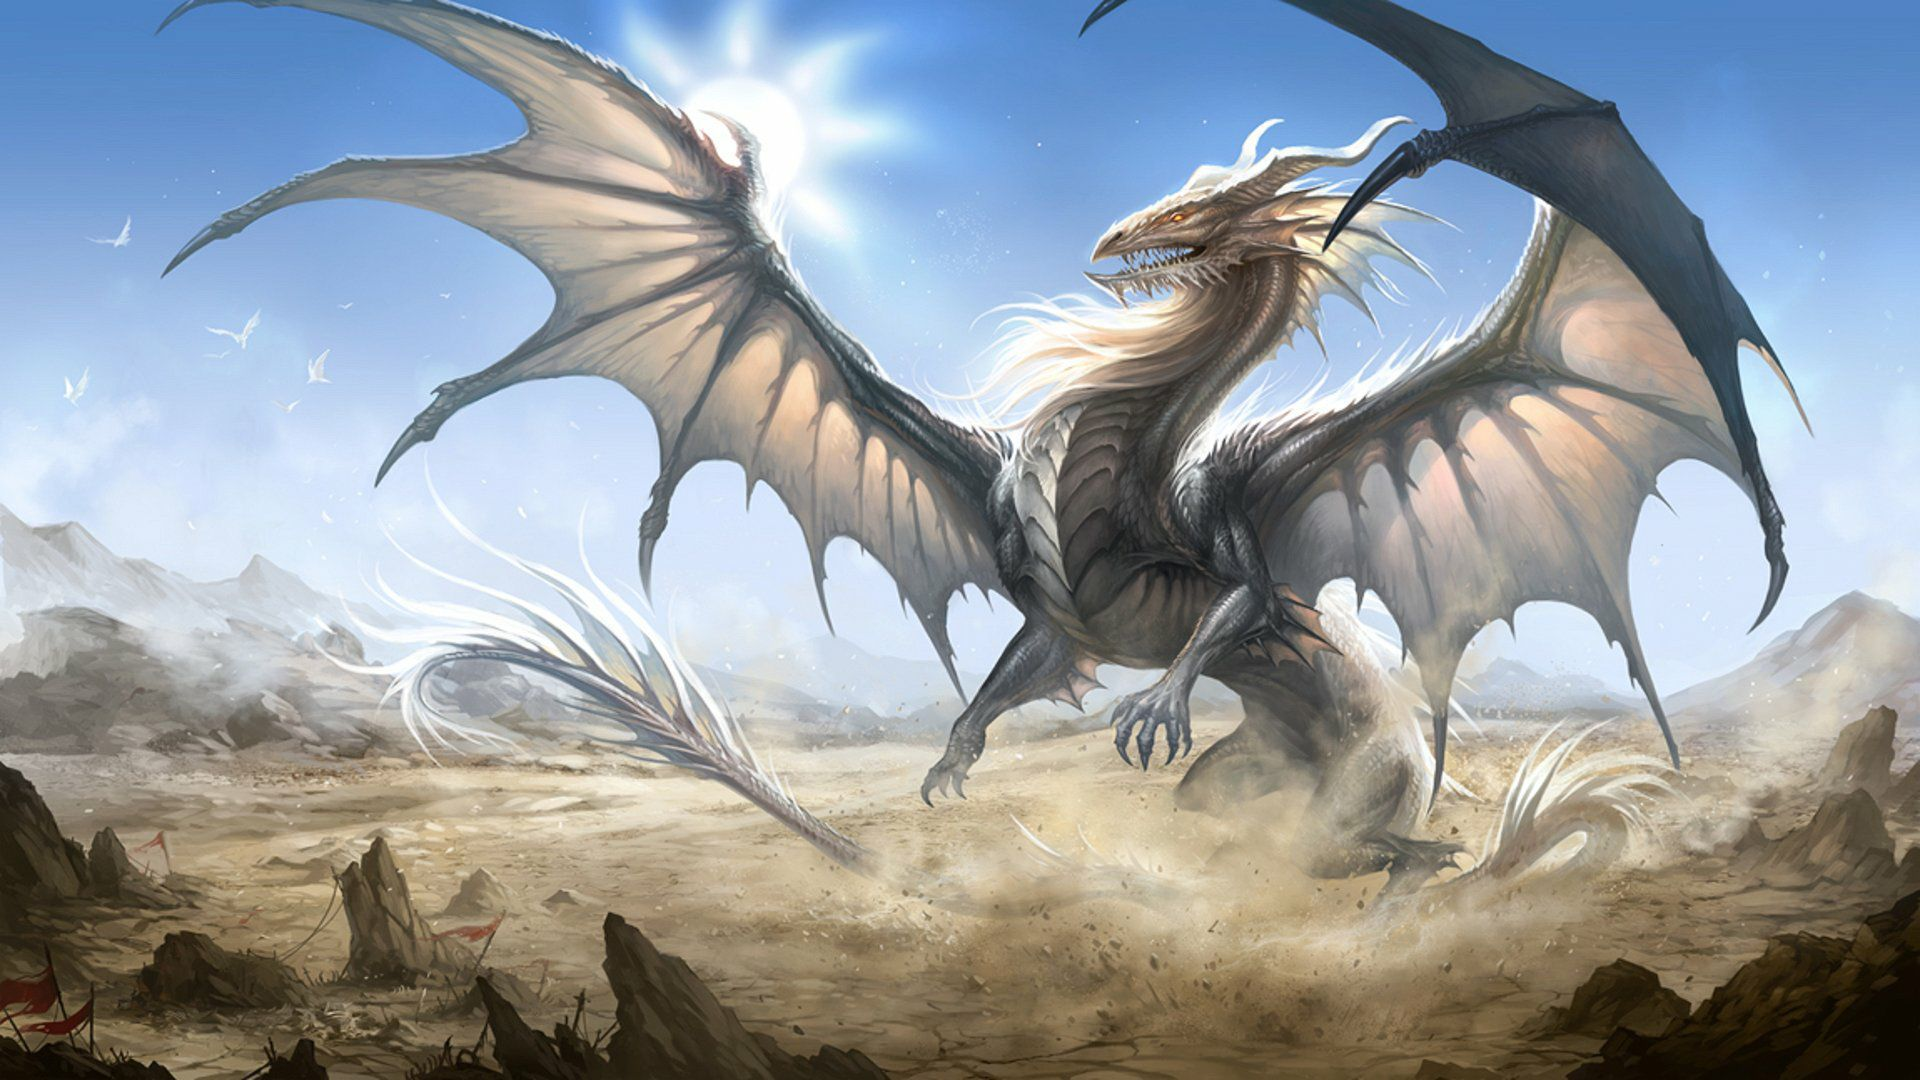 Dragons (folklore)